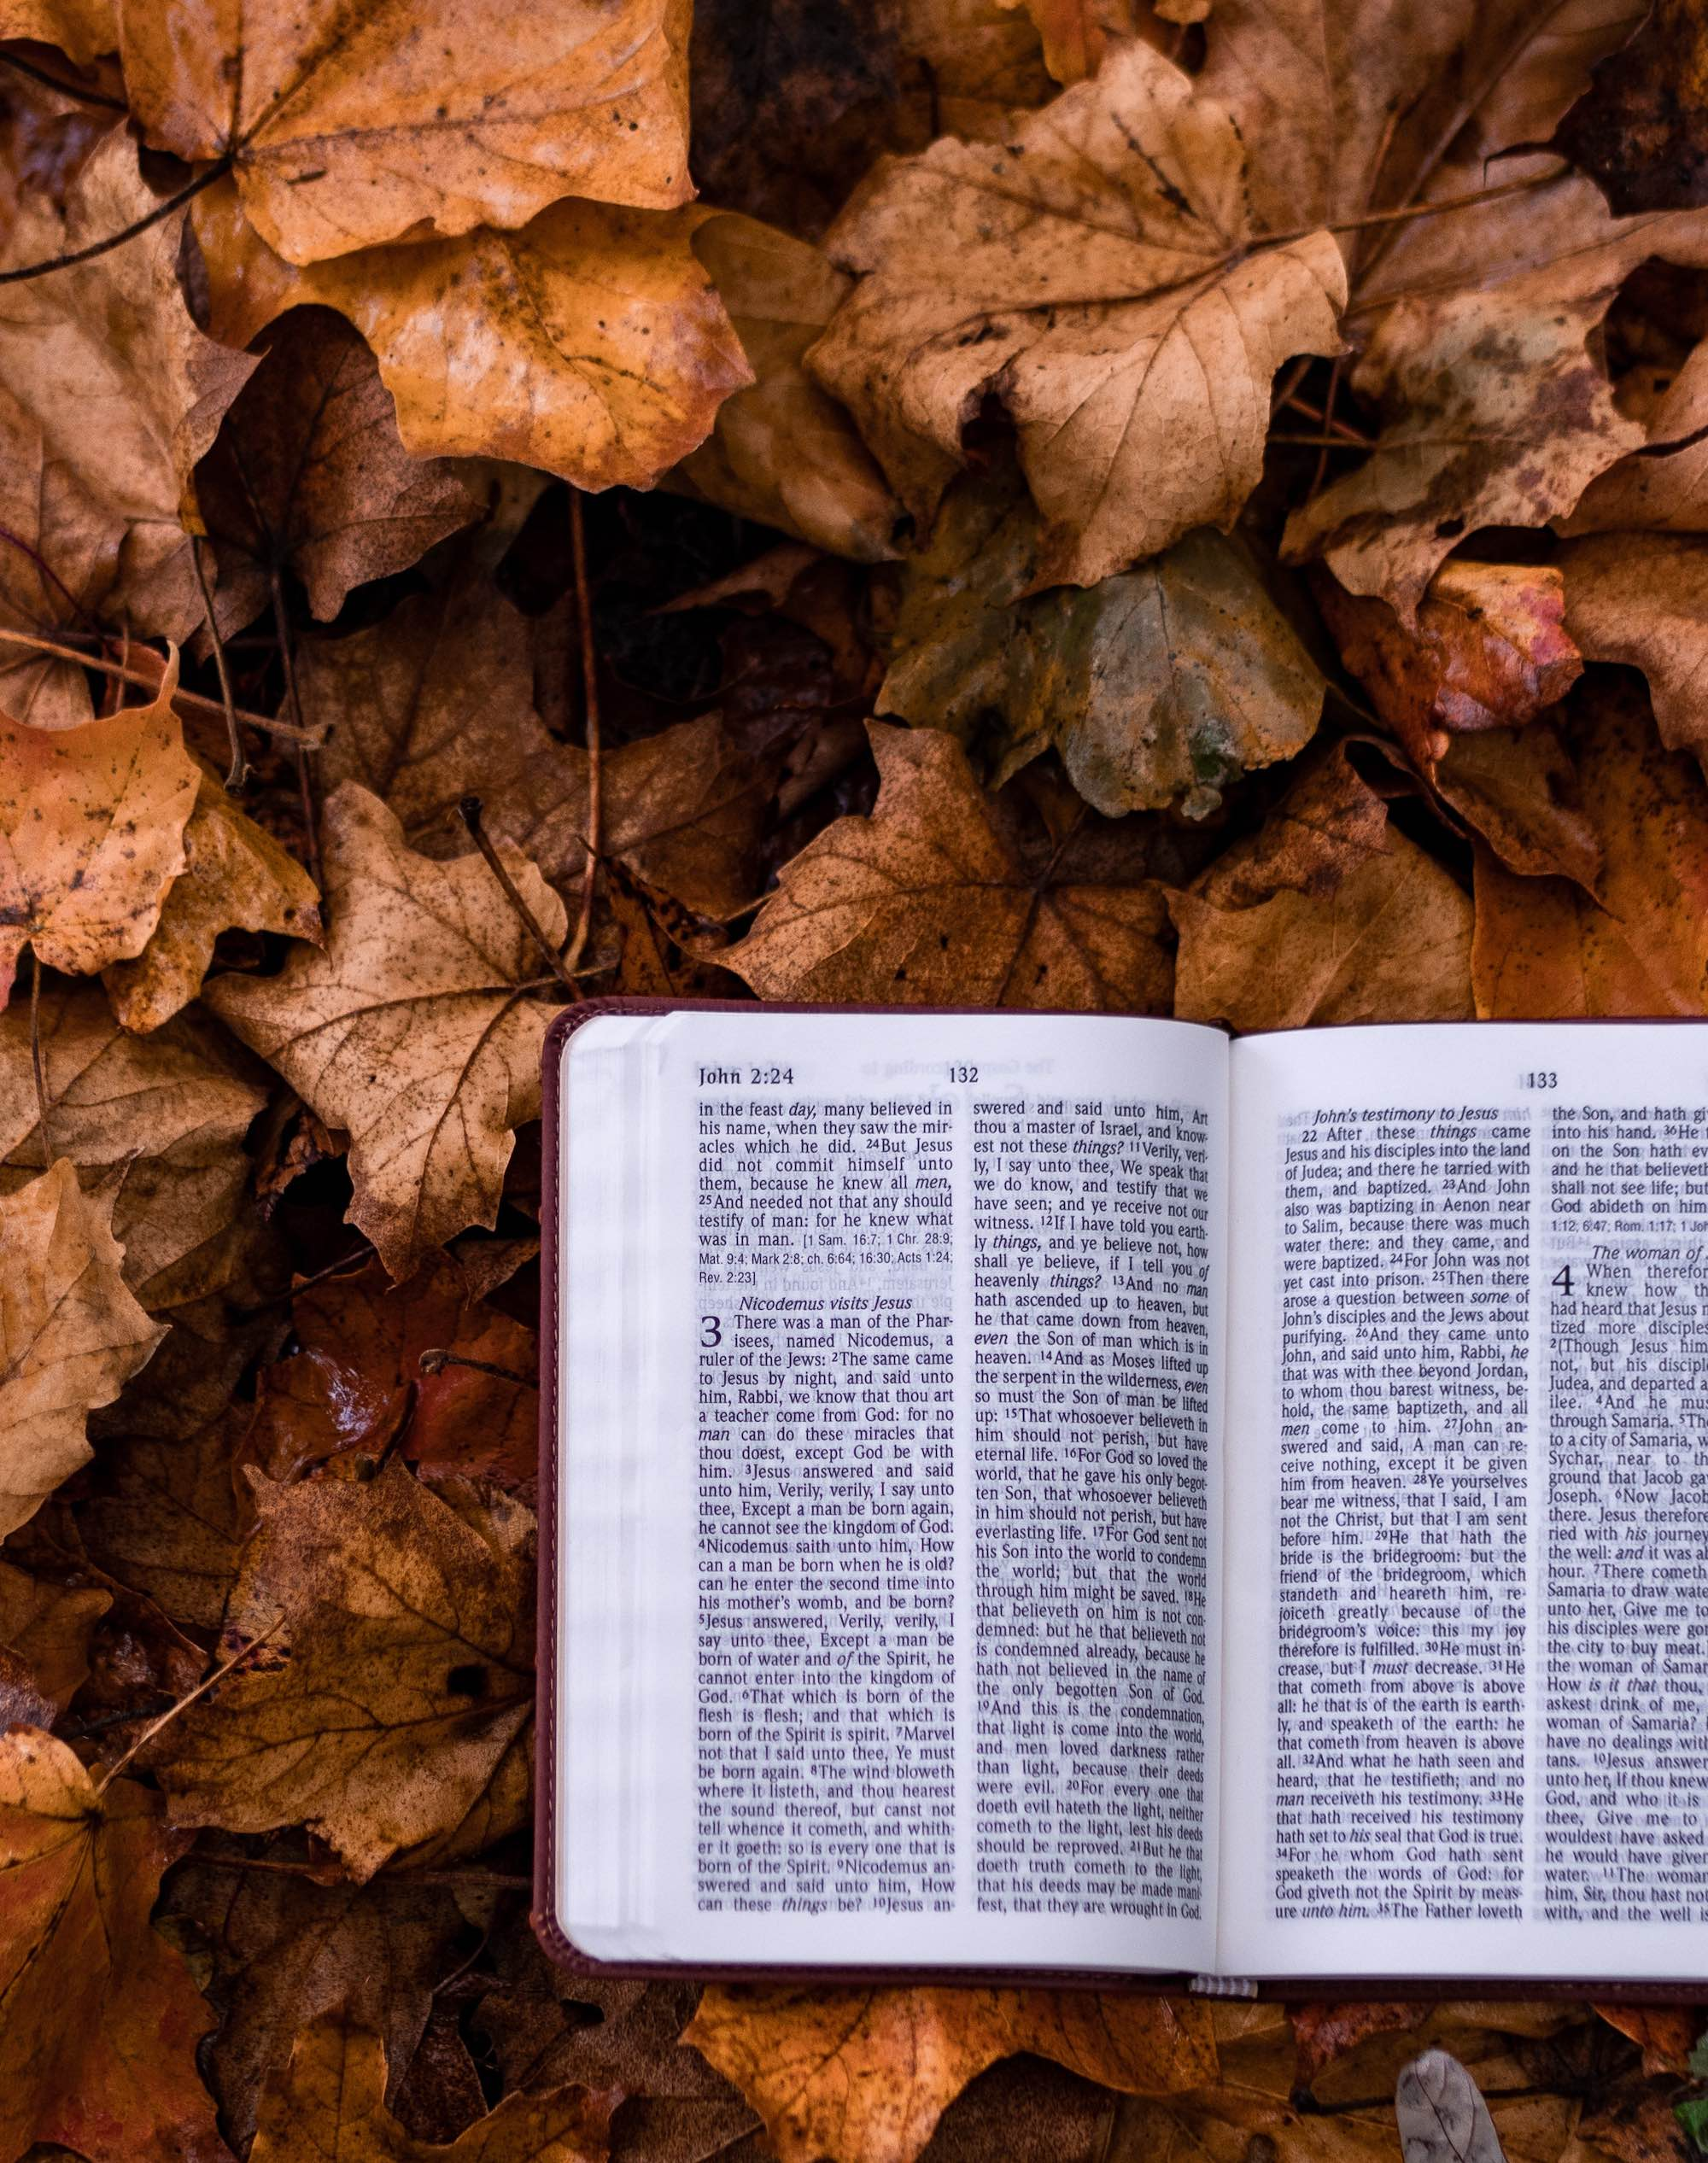 bible open to John on crunchy brown leaves